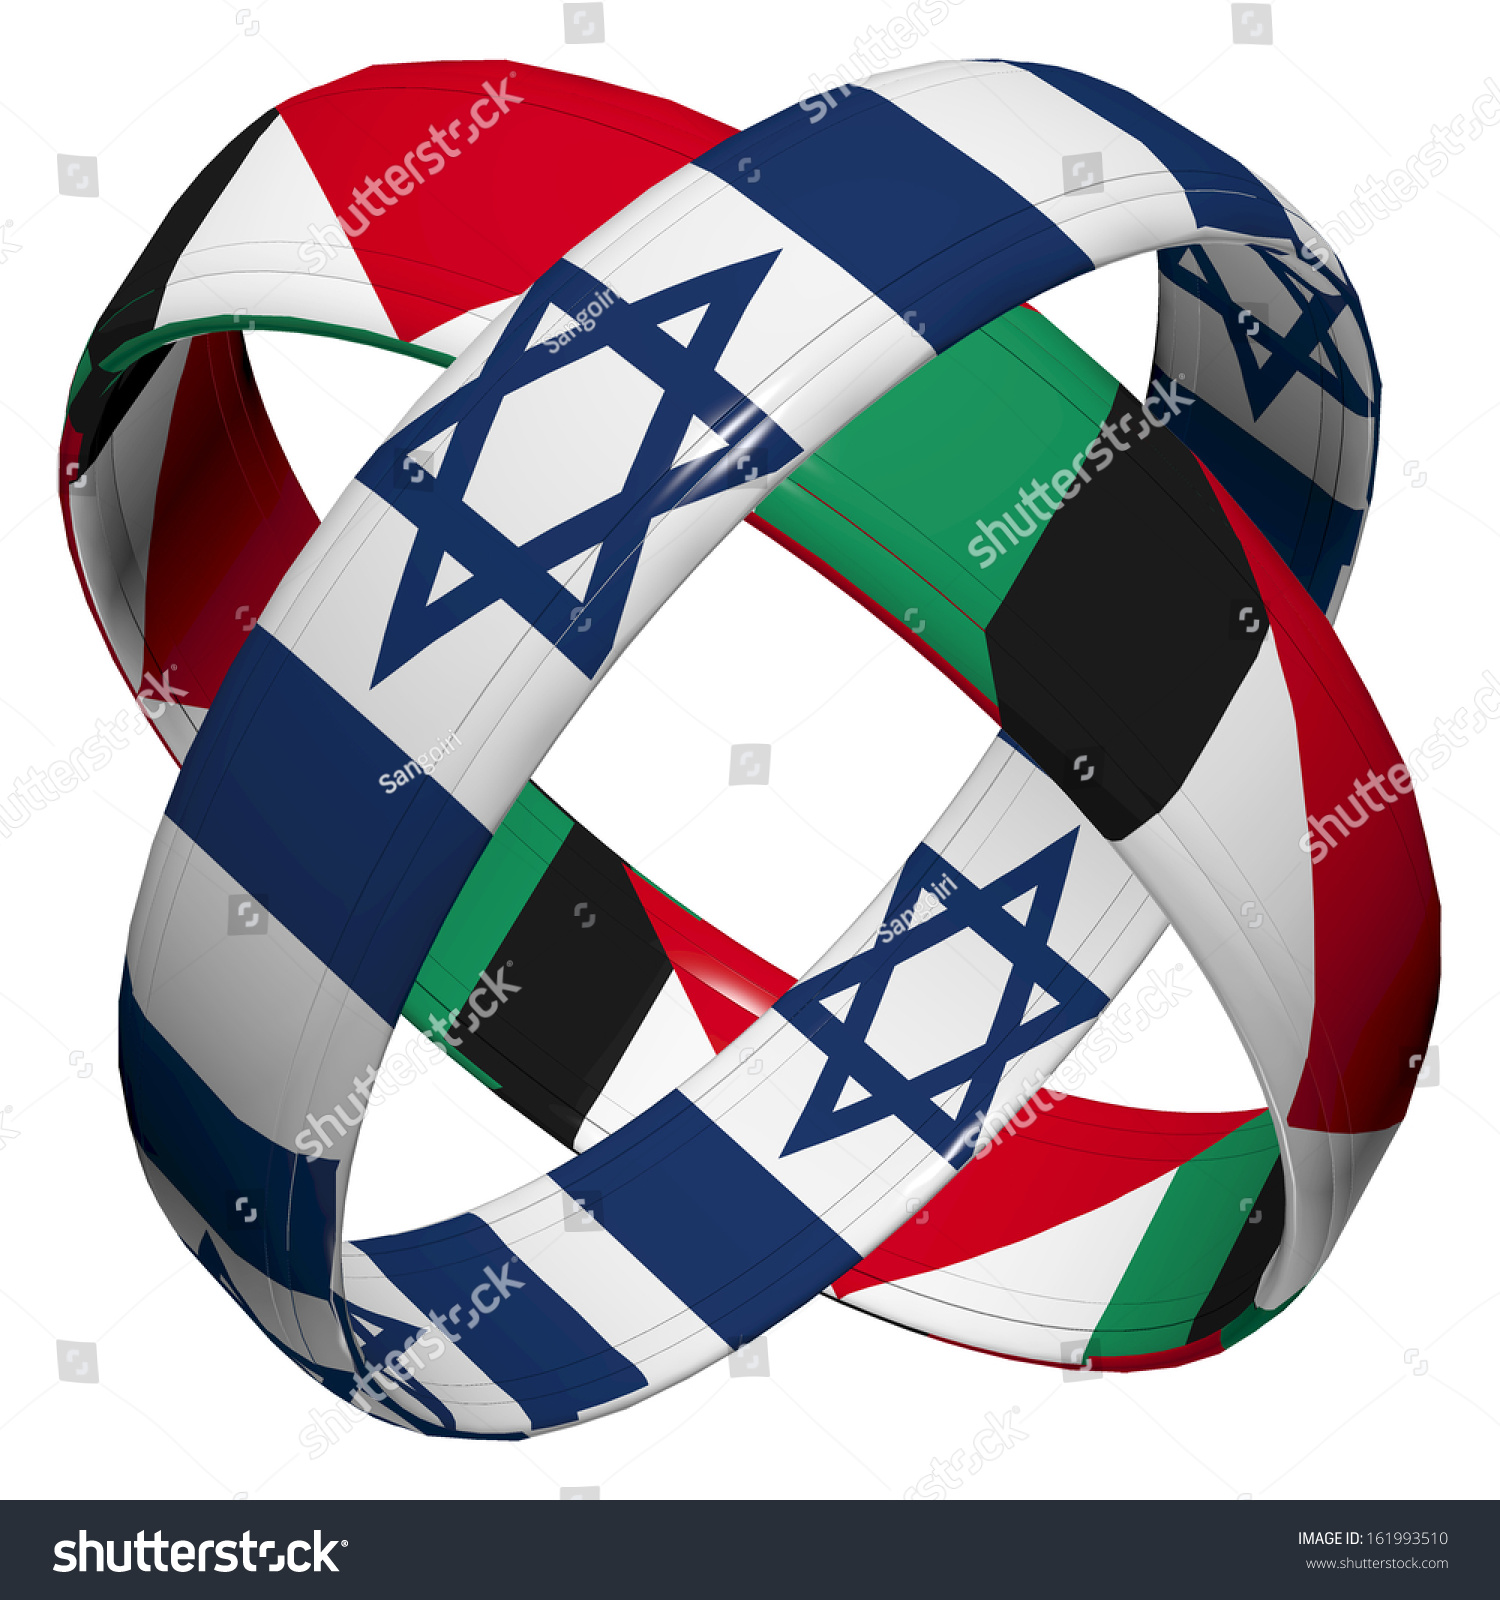 Israel palestine symbol appeal peaceful coexistence stock symbol and appeal for peaceful coexistence between the two parties biocorpaavc Choice Image